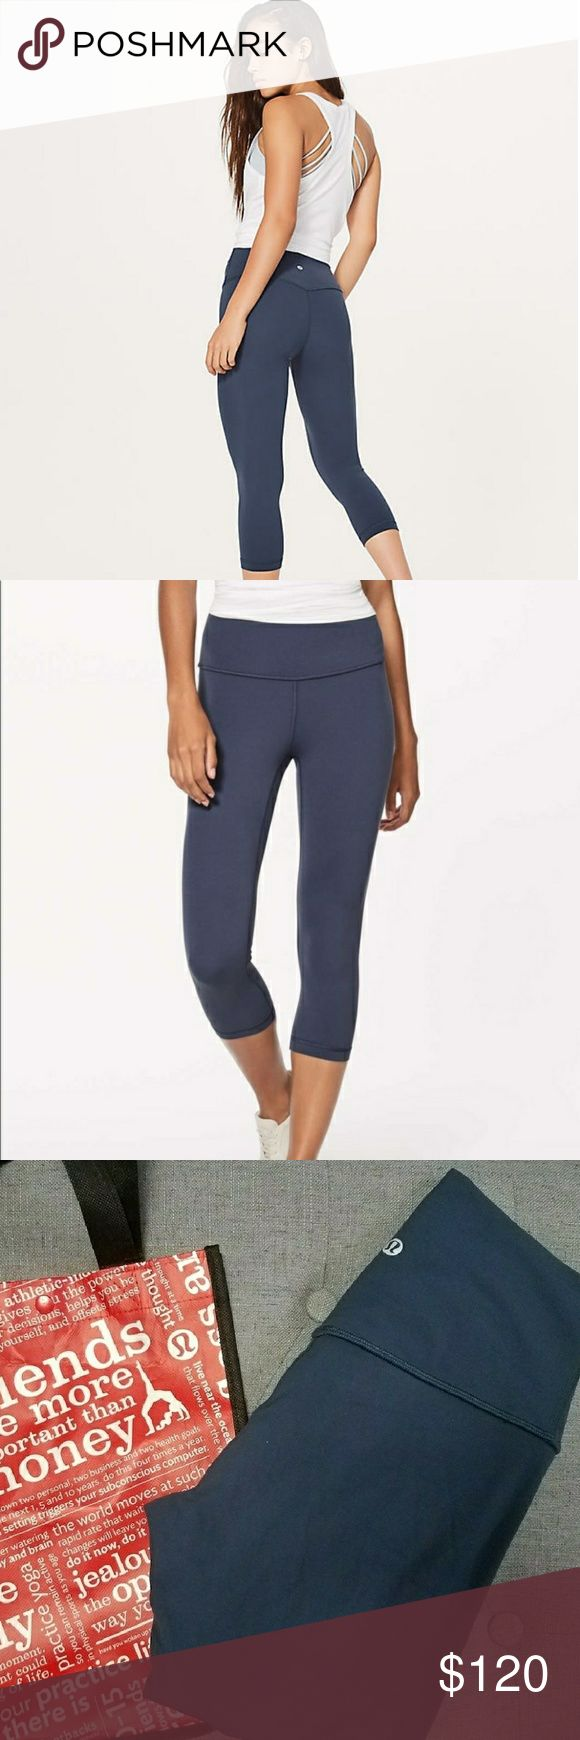 Lululemon Align Mach Blue Excellent condition - Size 4. 19' Crops .  Purchased in Orlando, Fl in November - Proof of receipt and tag as shown.  Open to trades for Lululemon leggings or Gymshark in excellent condition.  Feel free to make a reasonable offer! Please keep fees in mind 💓  I will not sell to users with no listings or reviews, sorry! lululemon athletica Pants Leggings